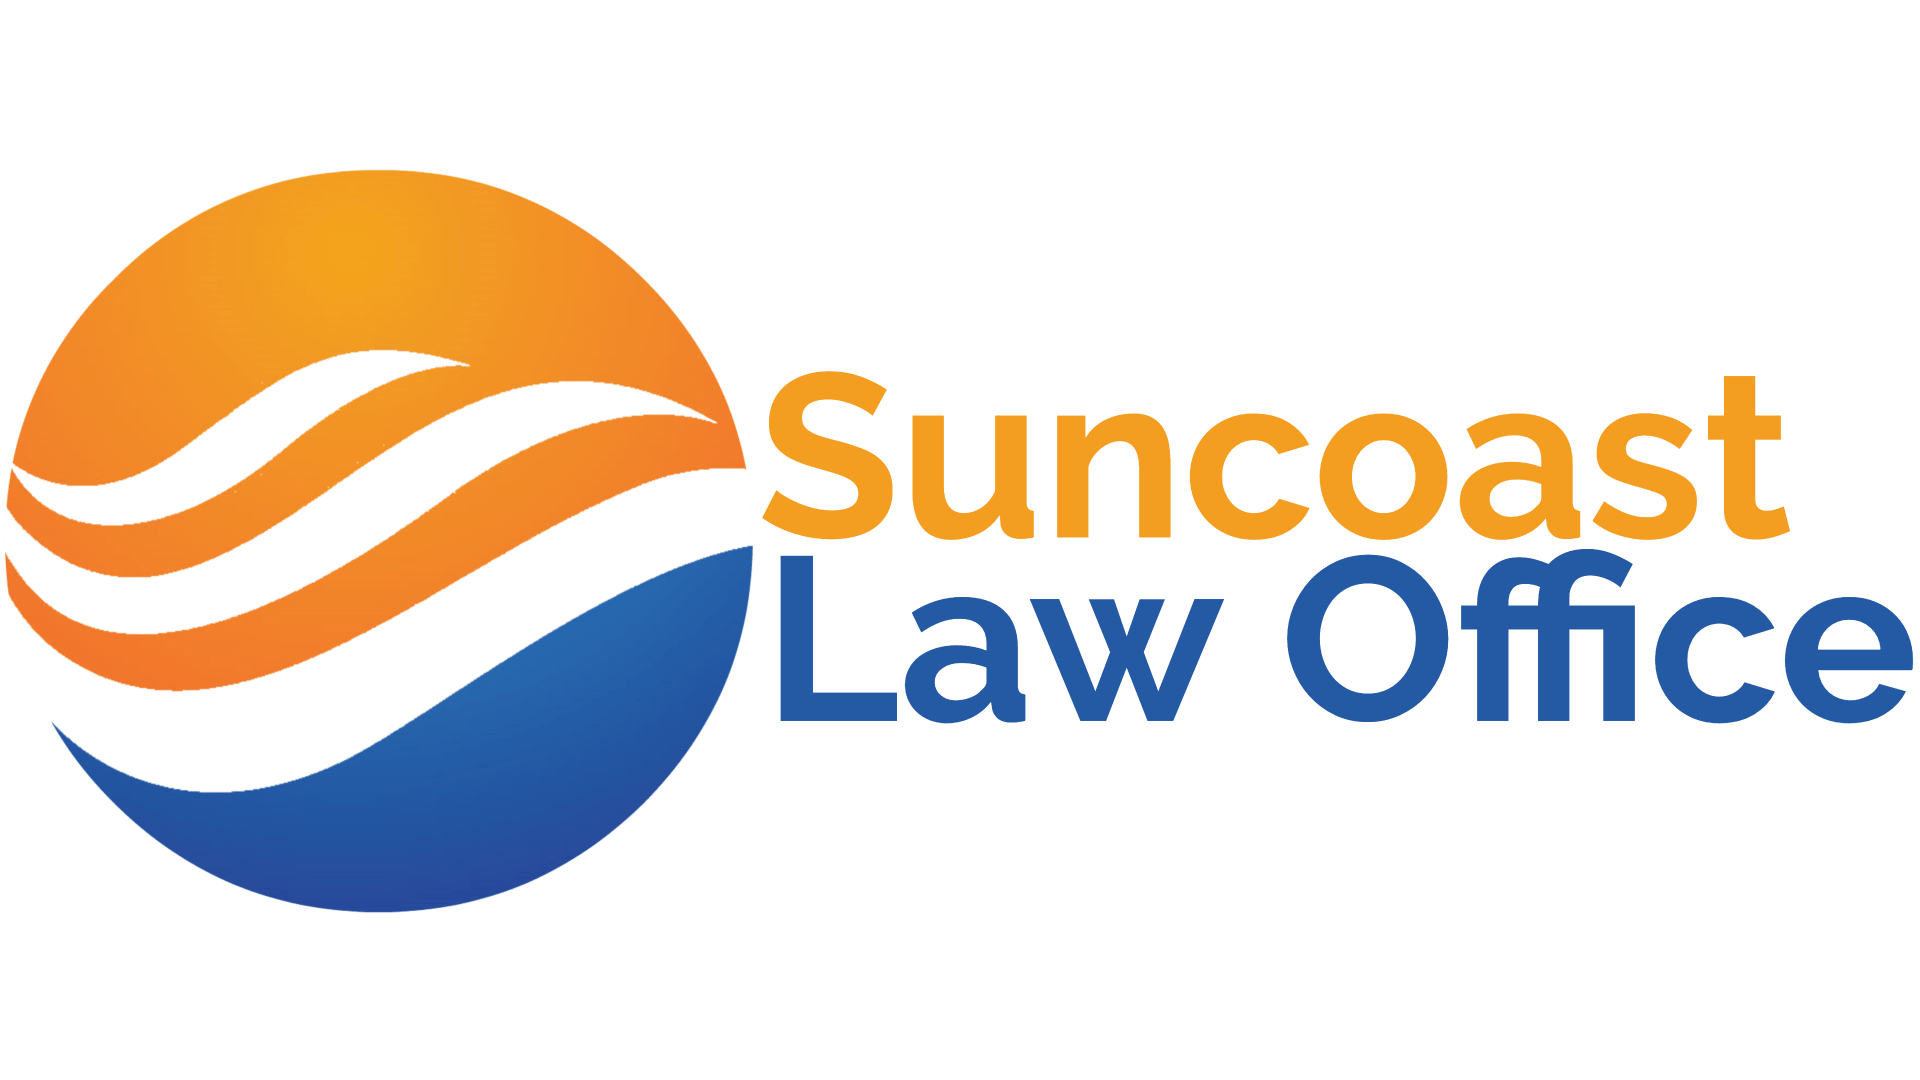 Suncoast Law Office Logo